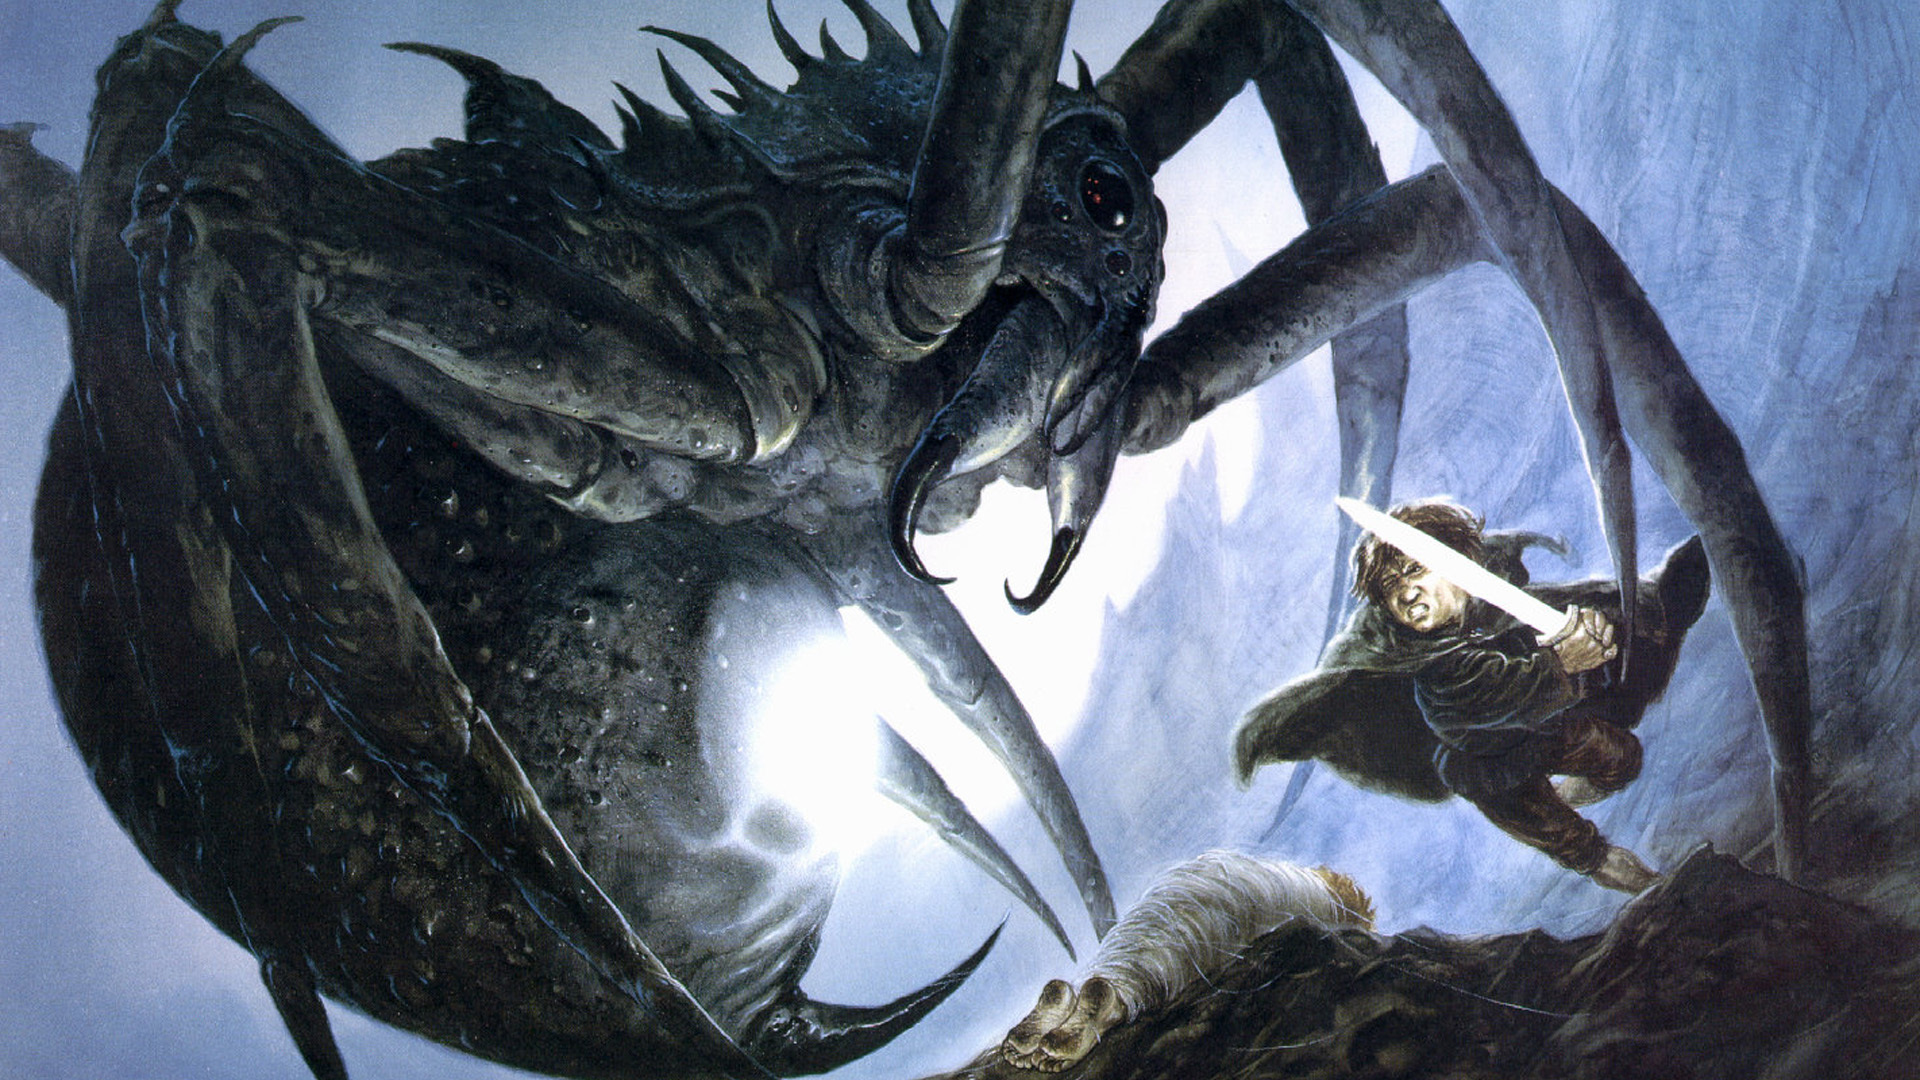 J R R Tolkien The Lord Of The Rings Shelob Samwise Gamgee 1920x1080